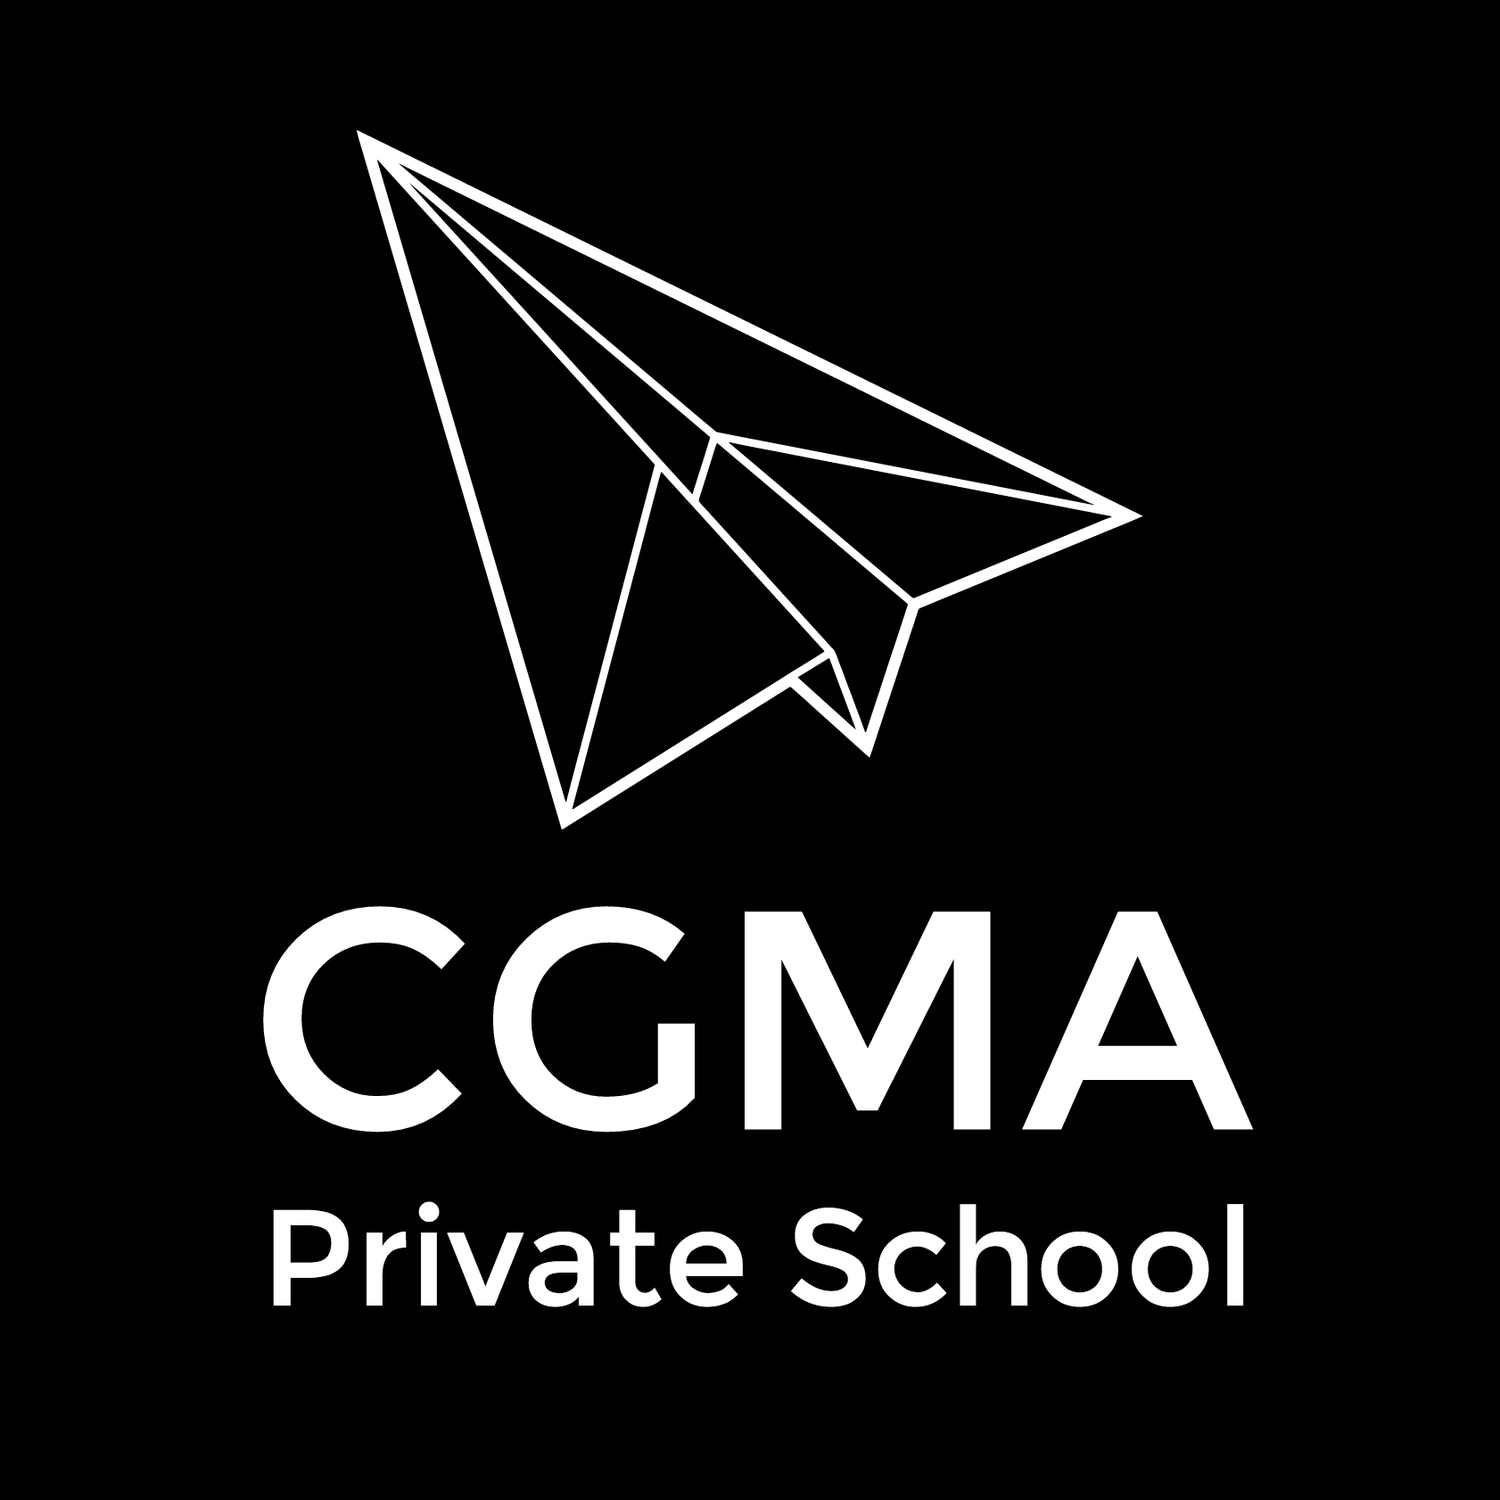 CGMA Private School